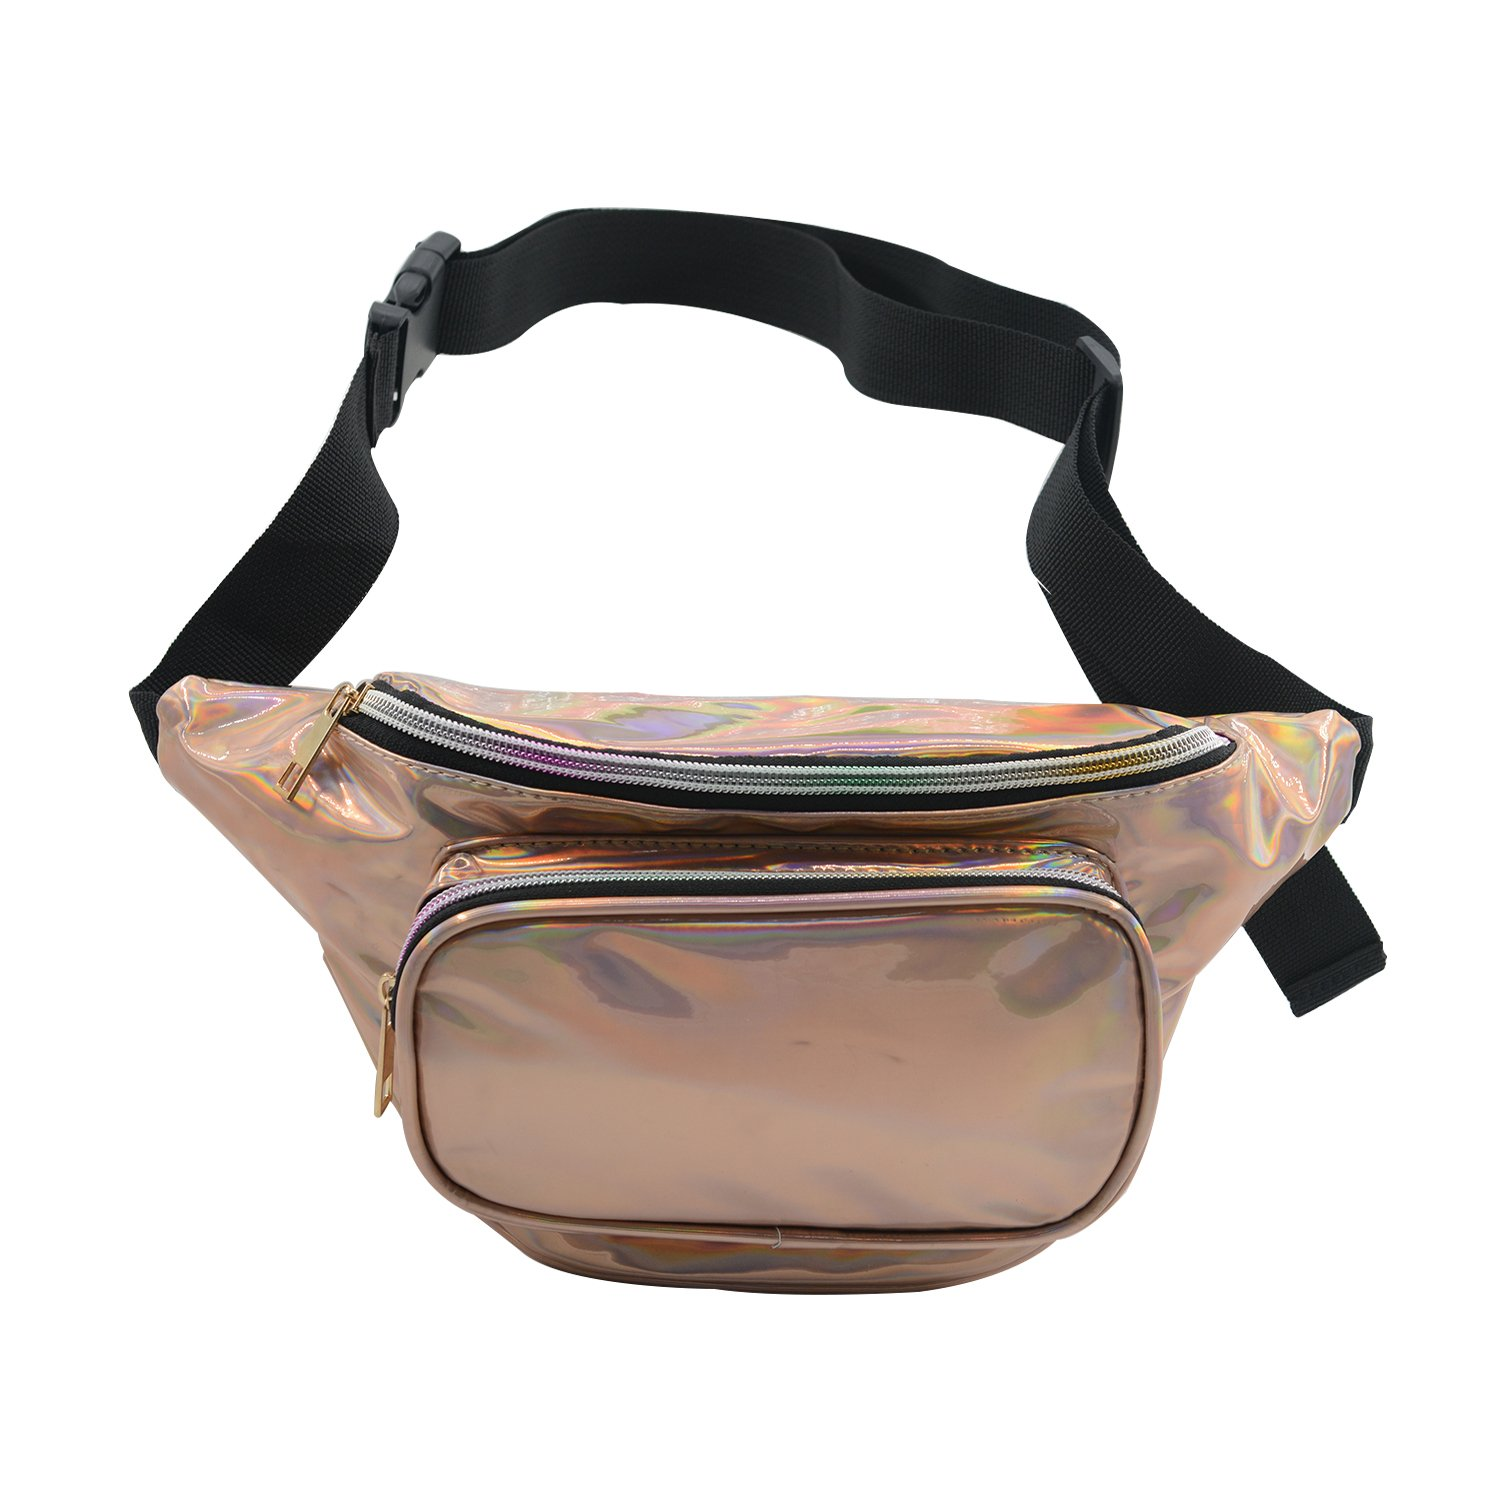 Women Fanny Pack PU Waist Pack Waterproof Hip Bum Bag Holographic Leather Belt Pouch for Party, Festival, Rave, Hiking, Travel Champagne